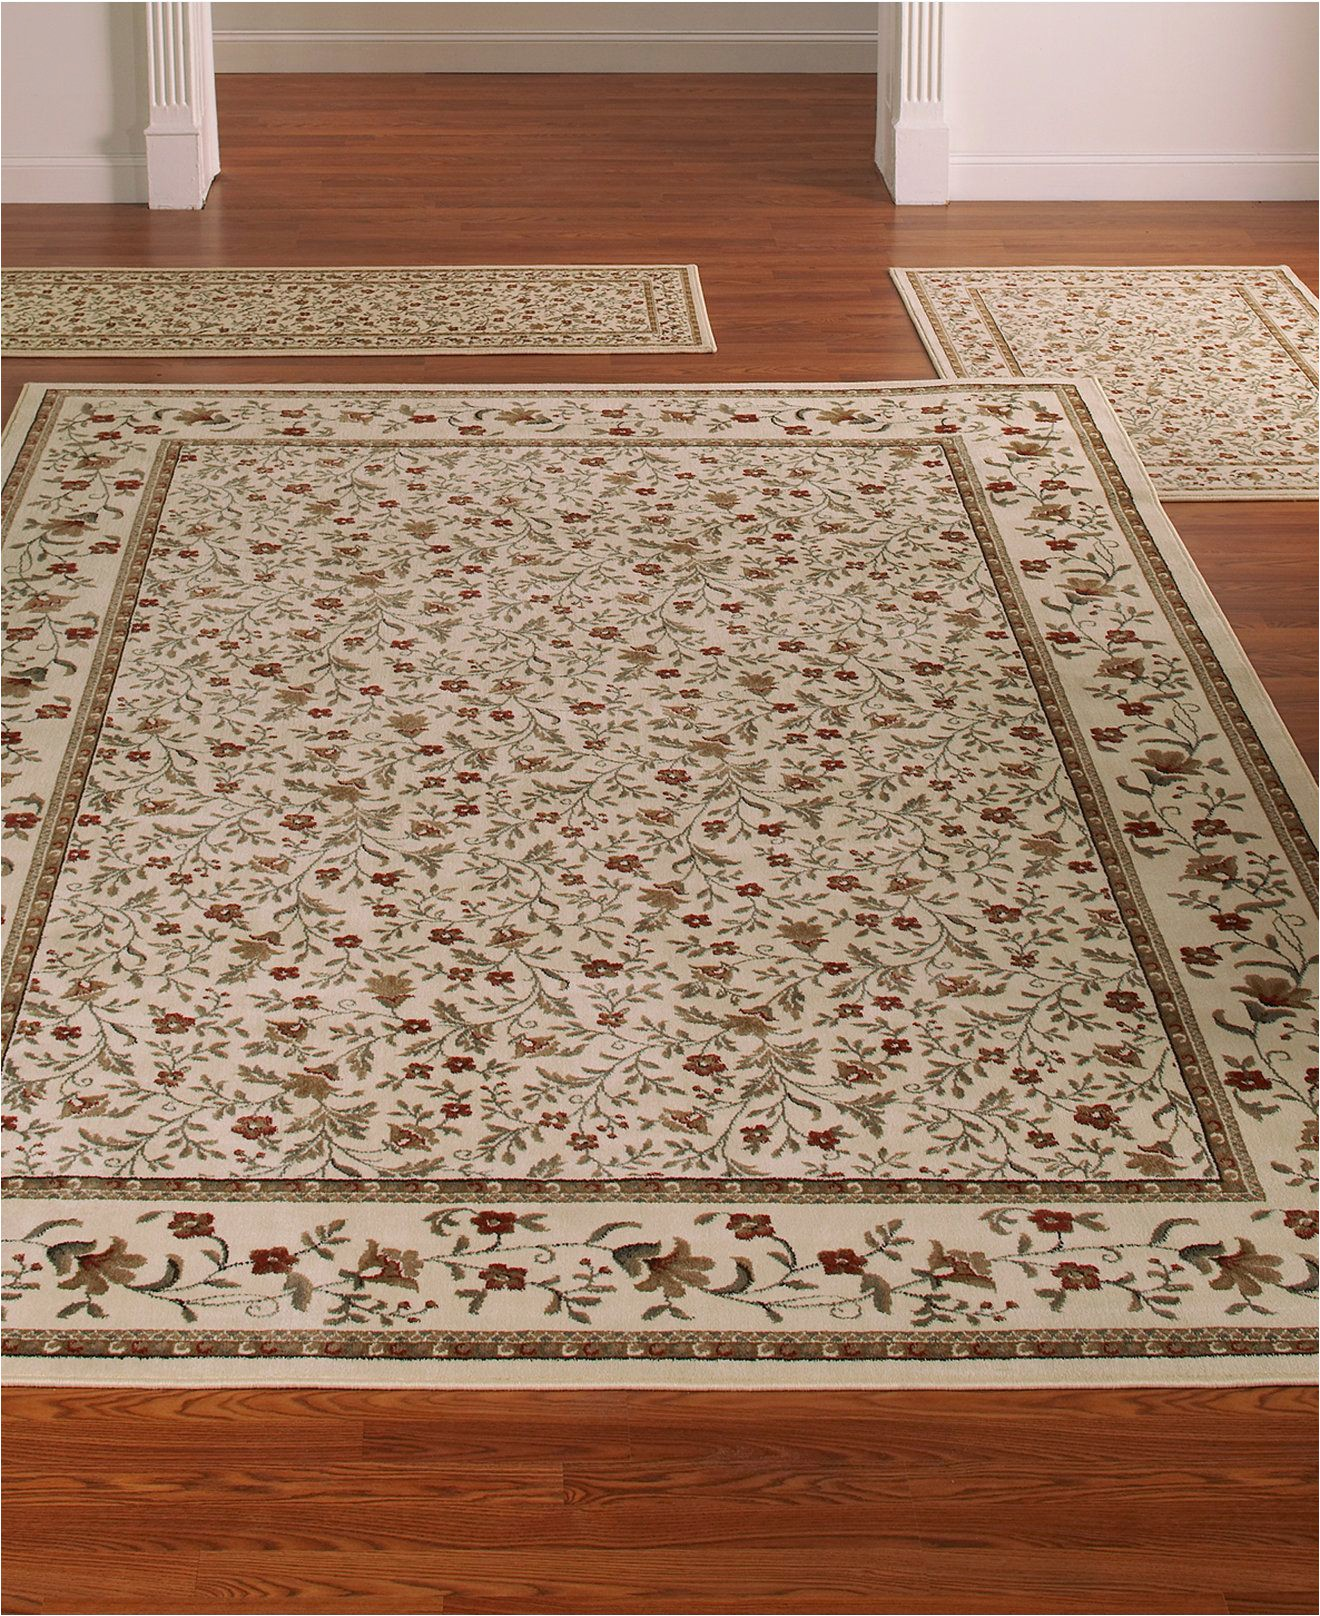 Big Lots 8 X 10 area Rugs area Rugs 8×10 Cheap area Rugs 8×10